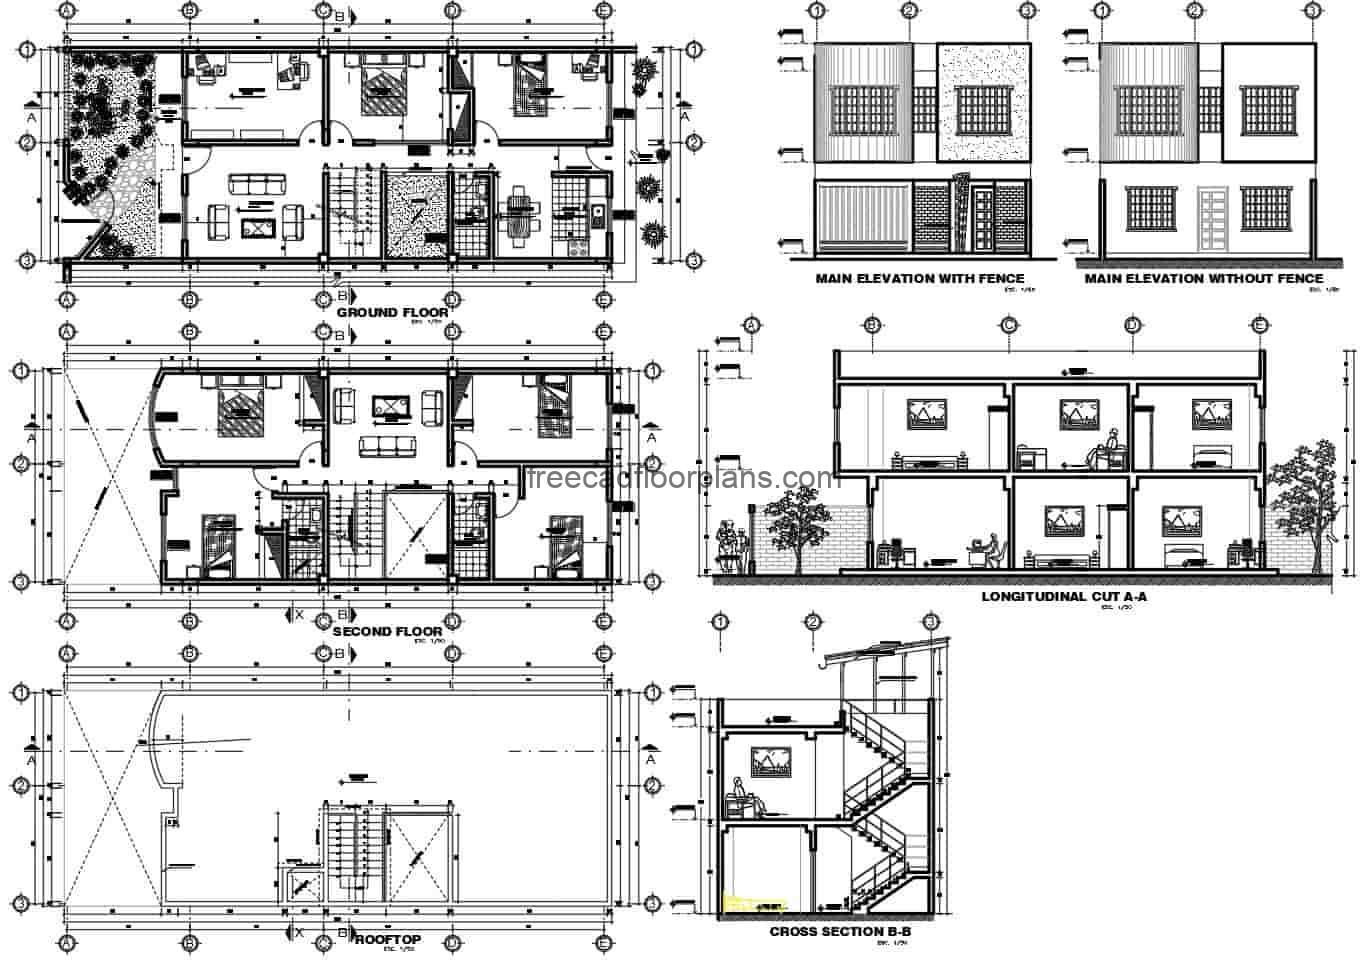 A complete project for a single family residence with four bedrooms on two levels, a social area on the first level with a garden, living room, kitchen, dining room, second level with four bedrooms. Plans with architectural design, elevations, sections and details of facade for free download in Autocad DWG format.